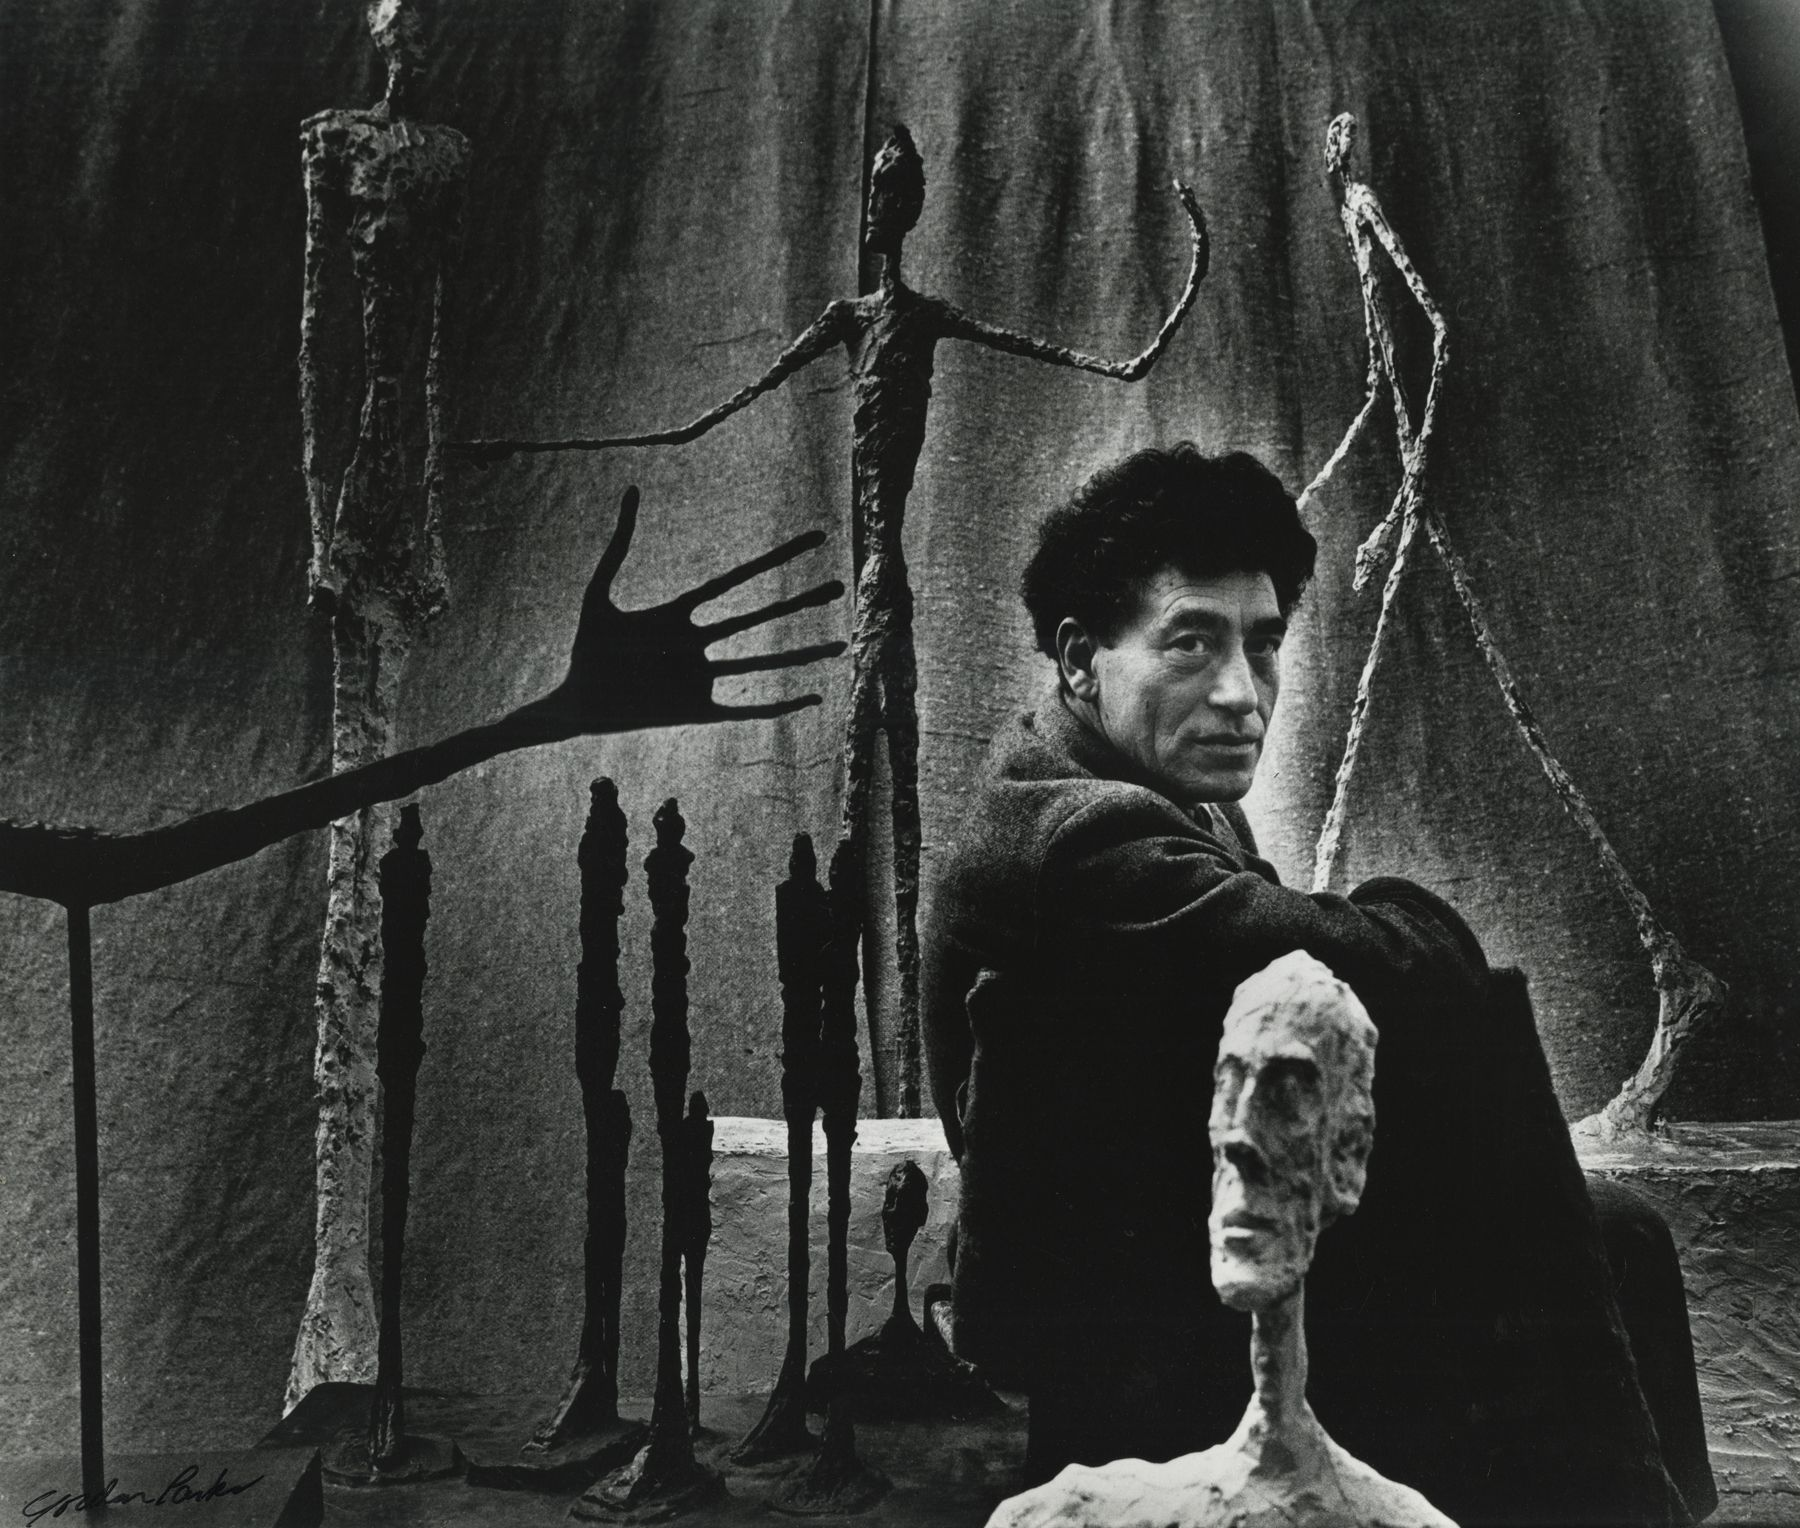 Gordon Parks - Alberto Giacometti and His Sculptures, Paris, France, 1951 - Howard Greenberg Gallery - 2019